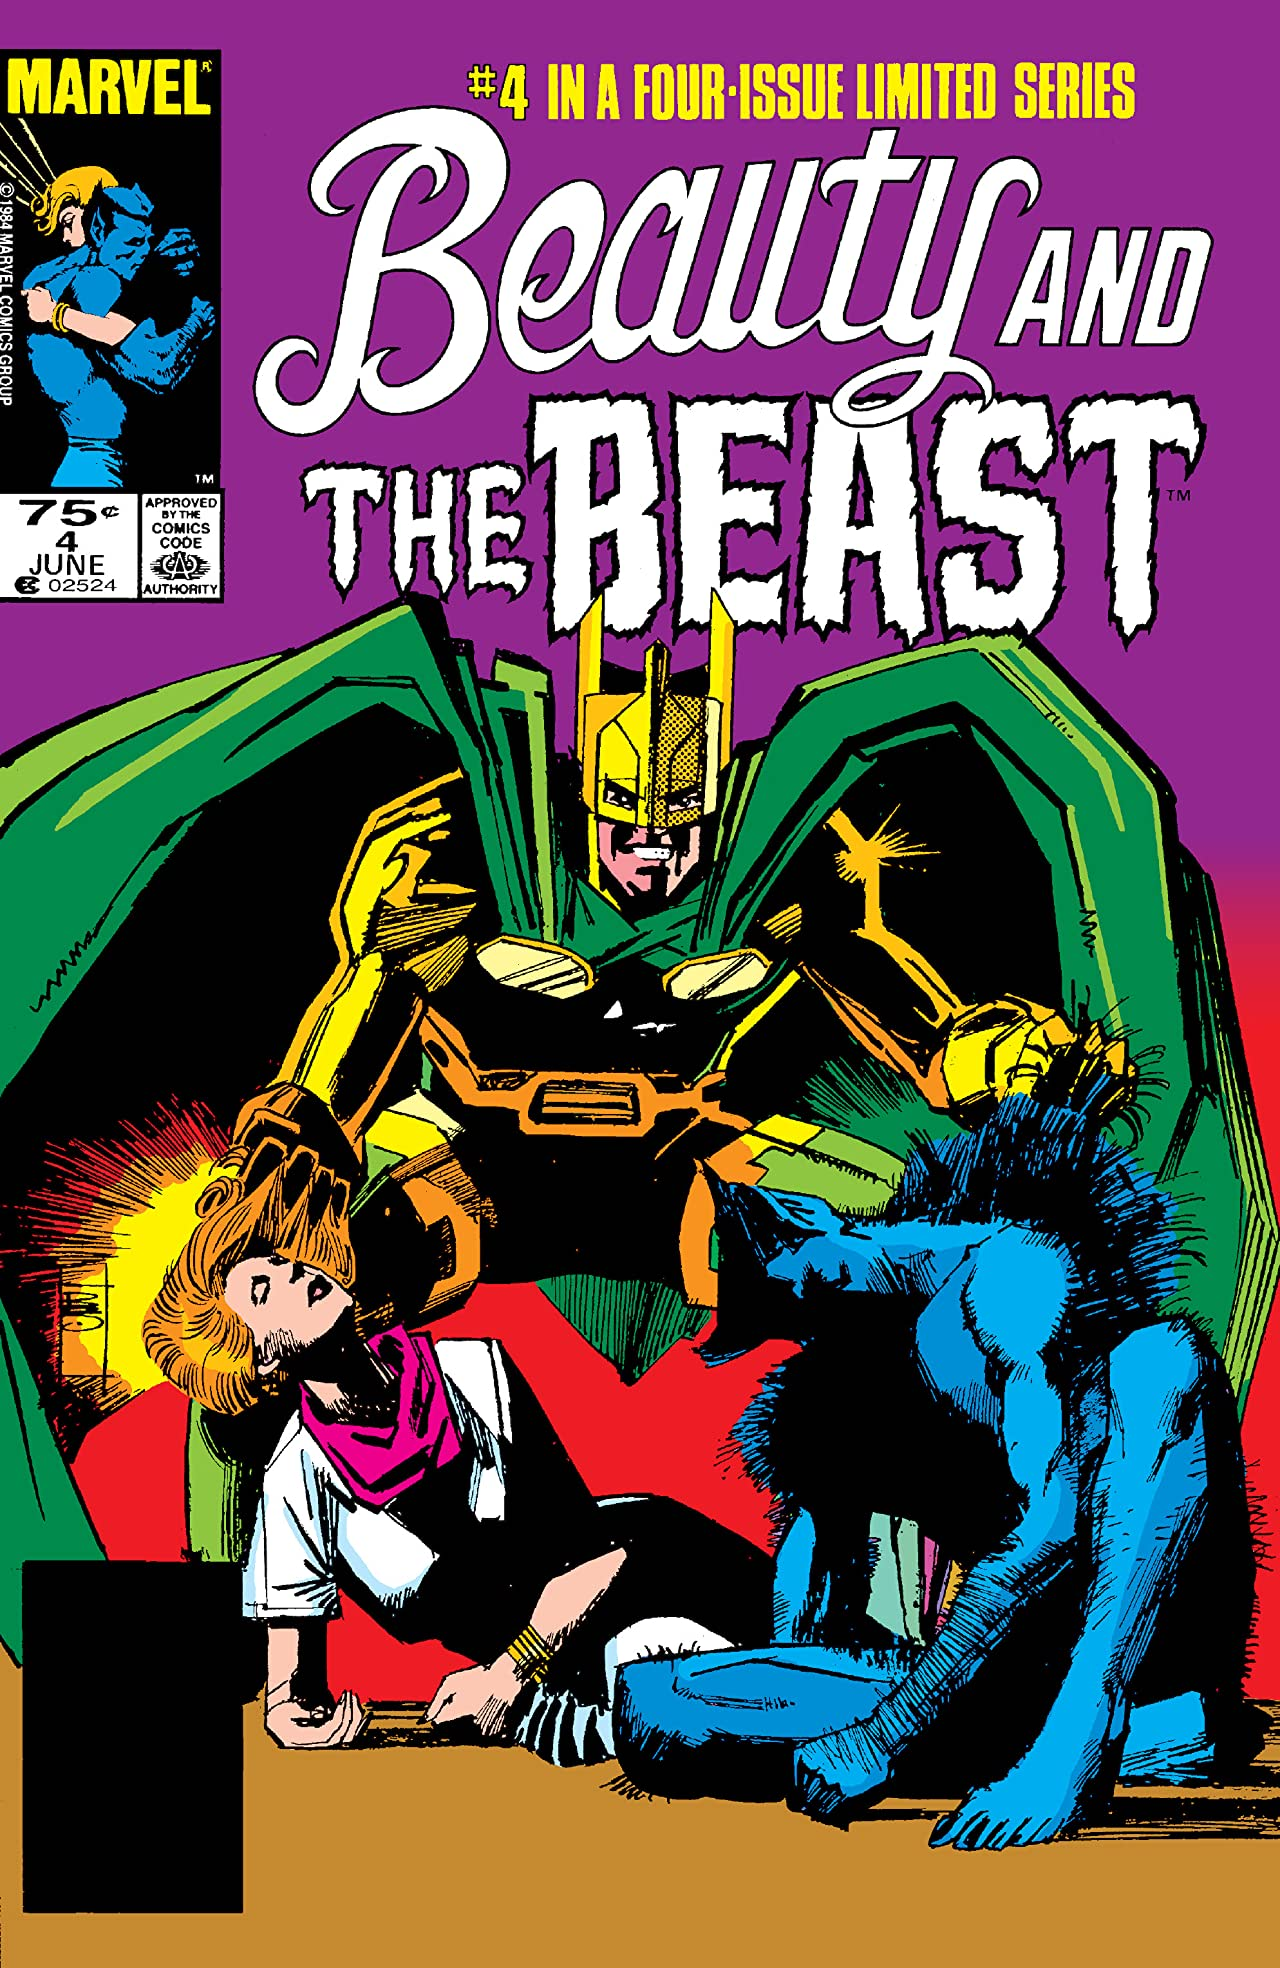 Beauty and the Beast (1985) #4 (of 4)